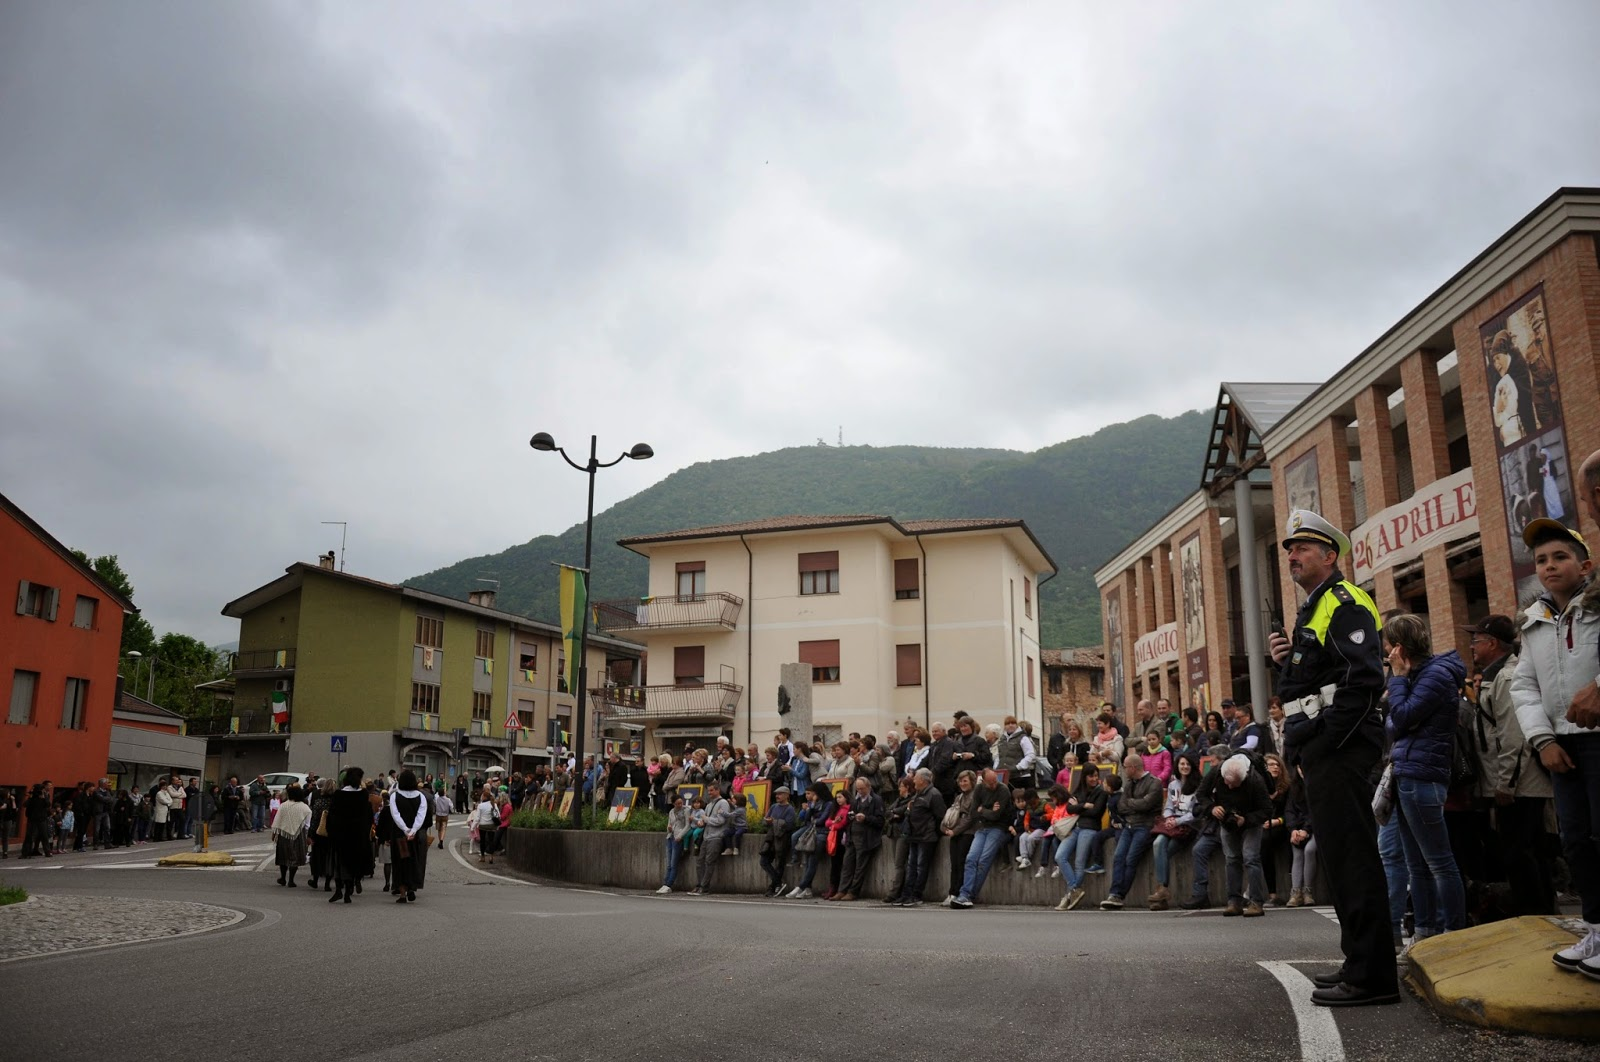 The audience at the Parade, Donkey Race, Romano d'Ezzelino, Veneto, Italy